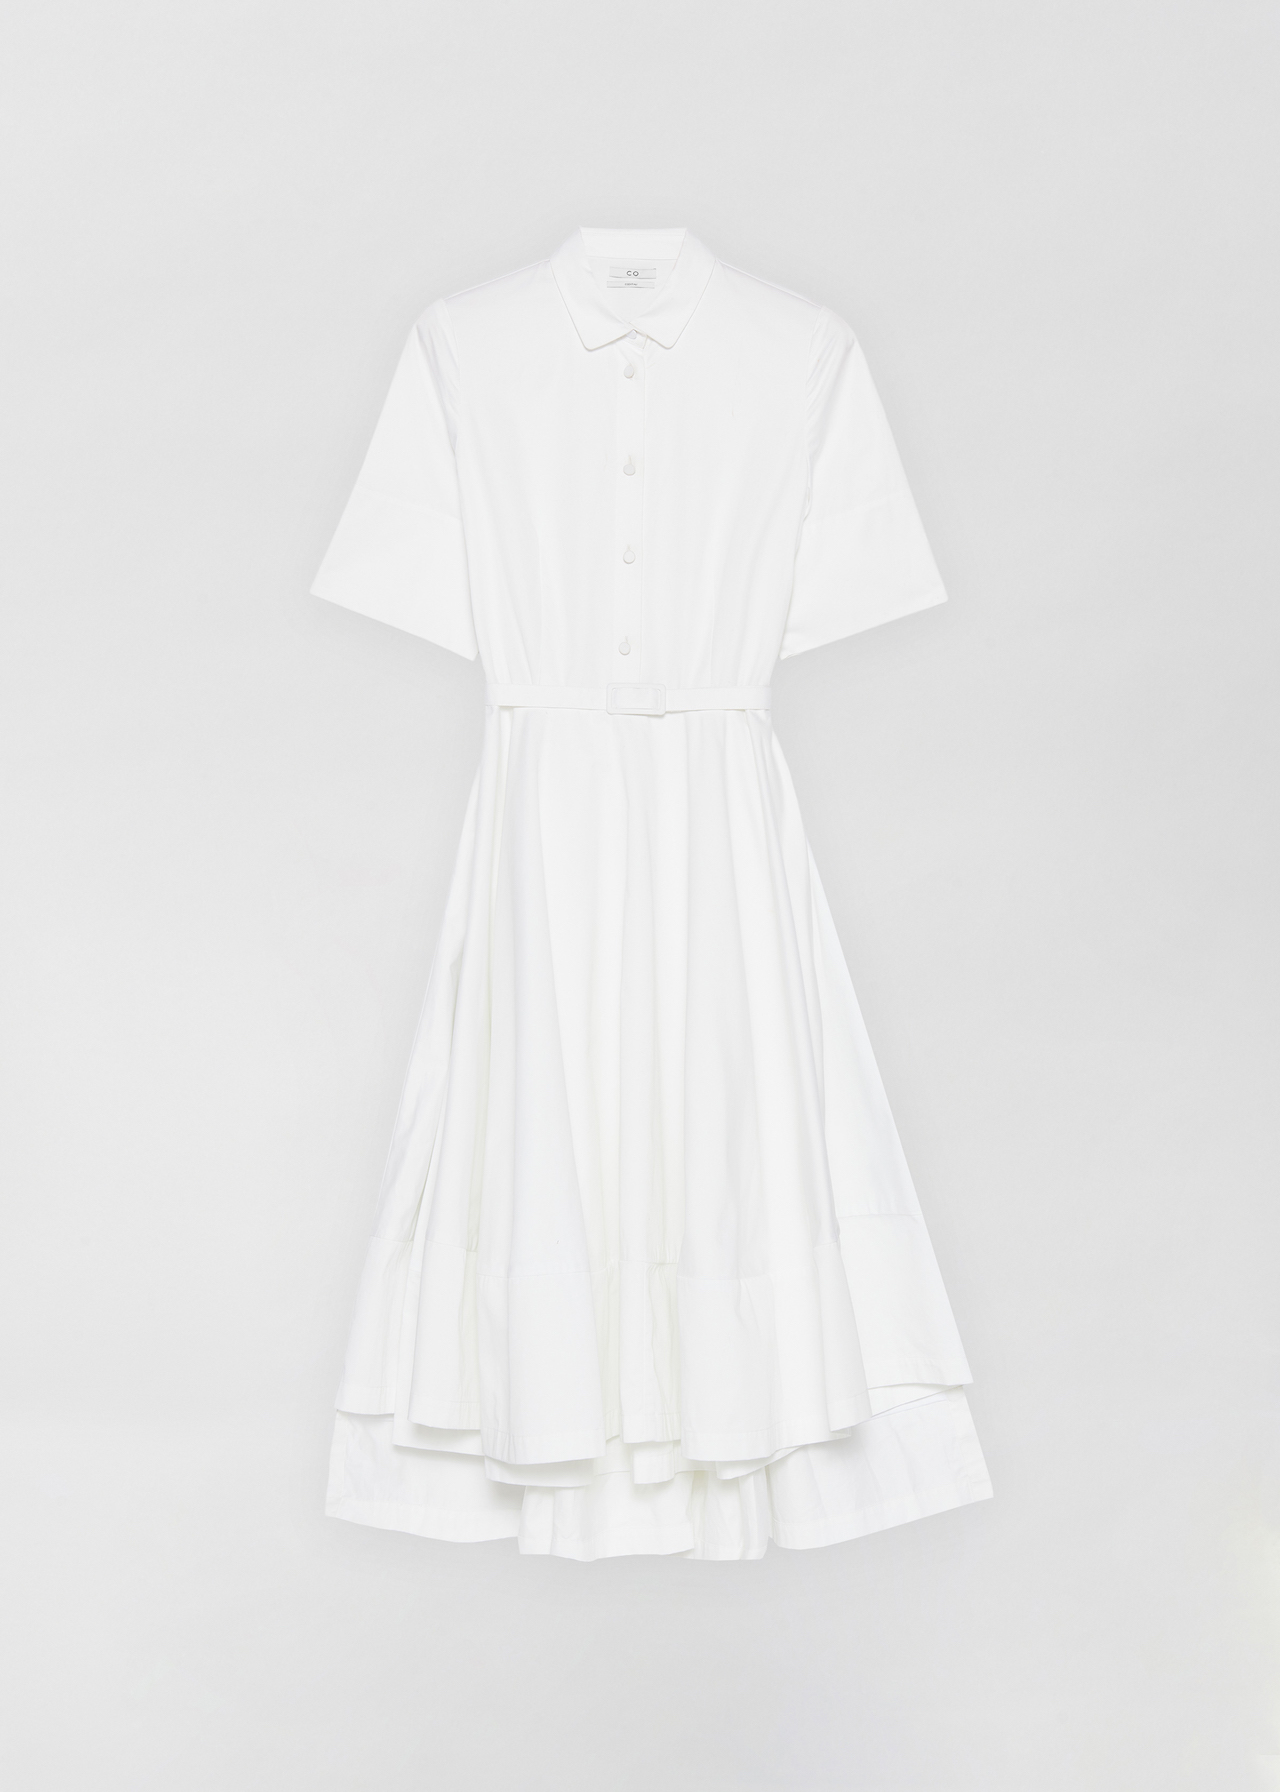 Short Sleeve Flared Dress - Navy in White by Co Collections